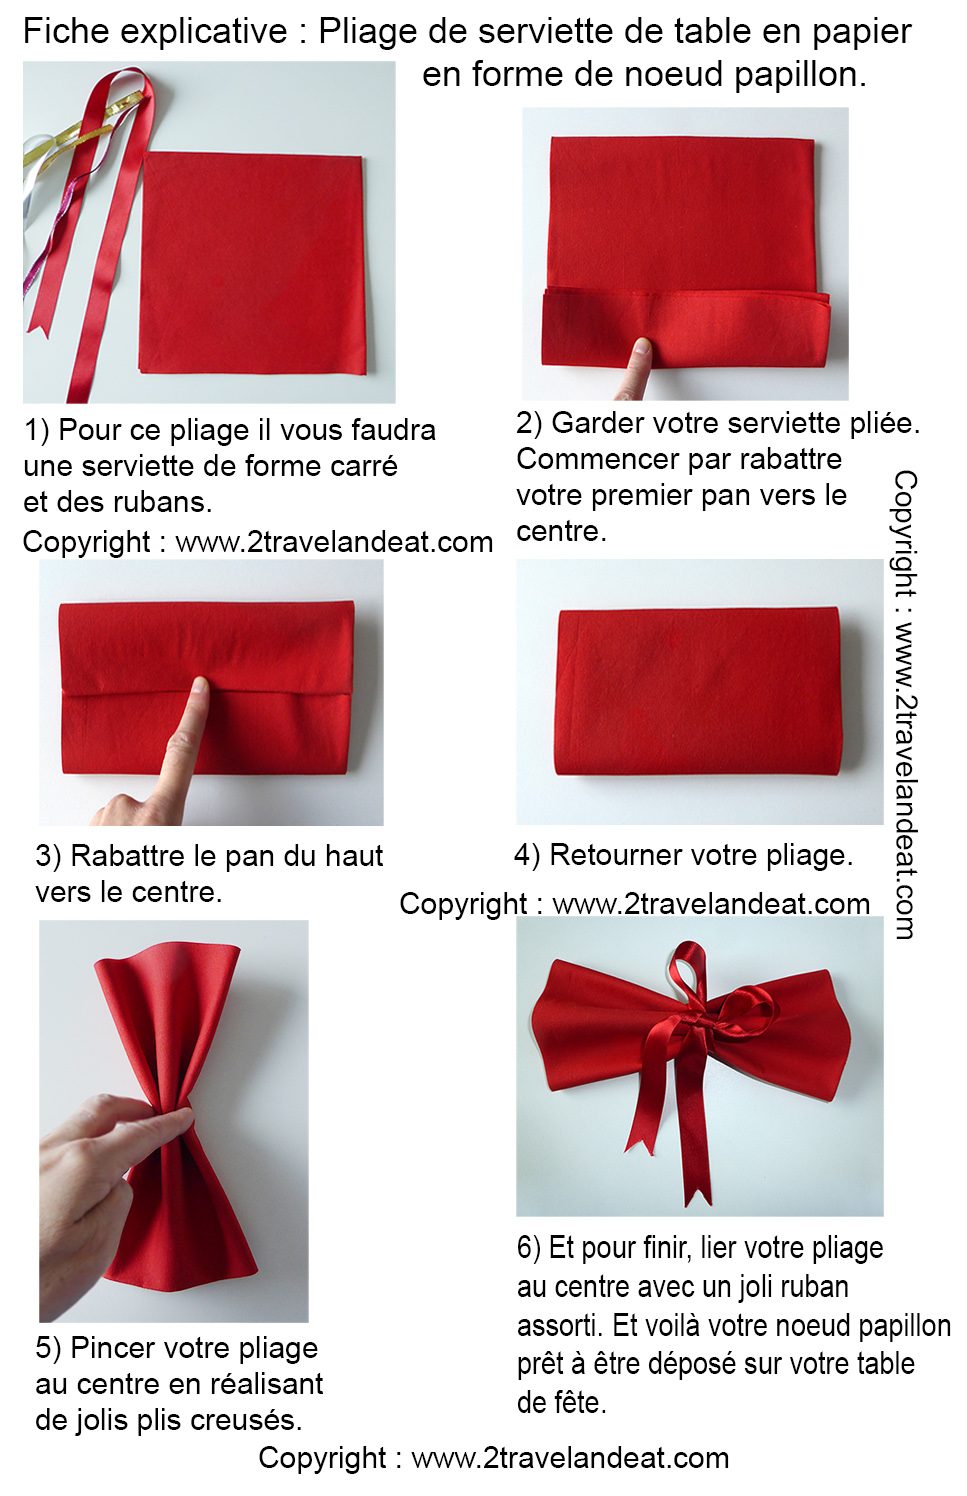 Pliage de serviettes de table en papier pliage de papier origami deocration de table plier - Modele de pliage de serviette de table en papier ...